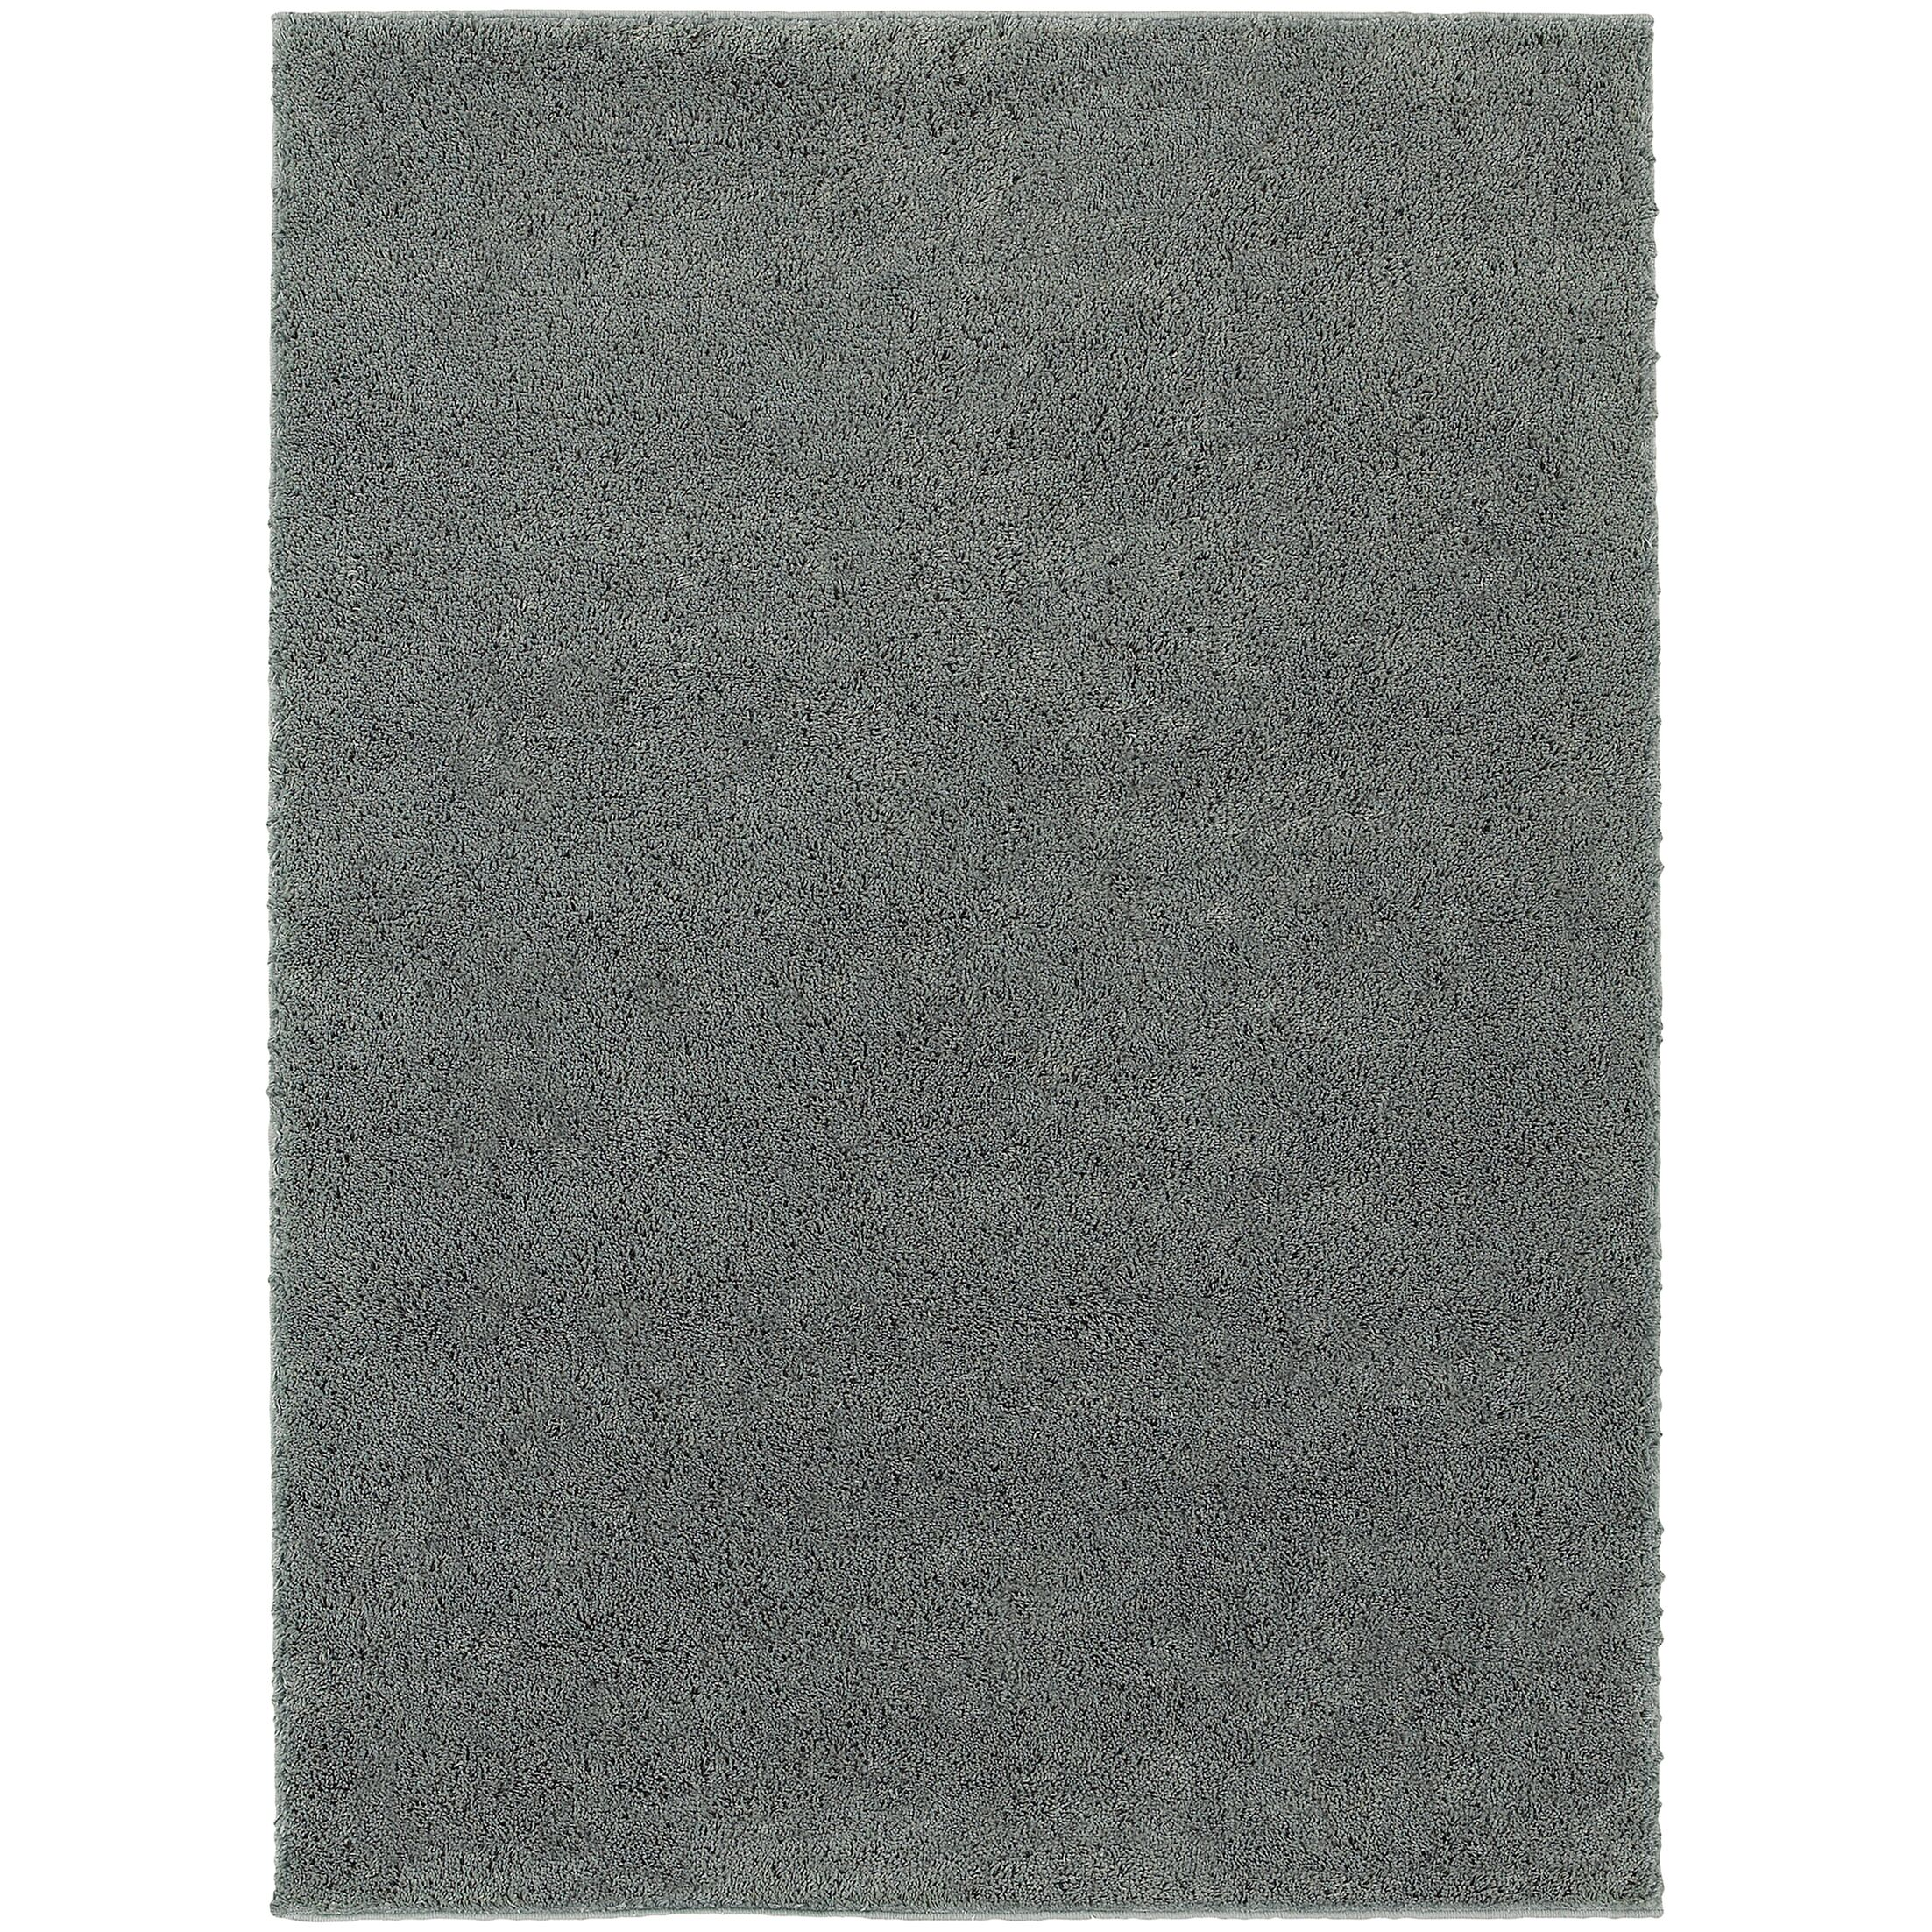 Hanson Blue Area Rug Rug Size: Rectangle 7'10